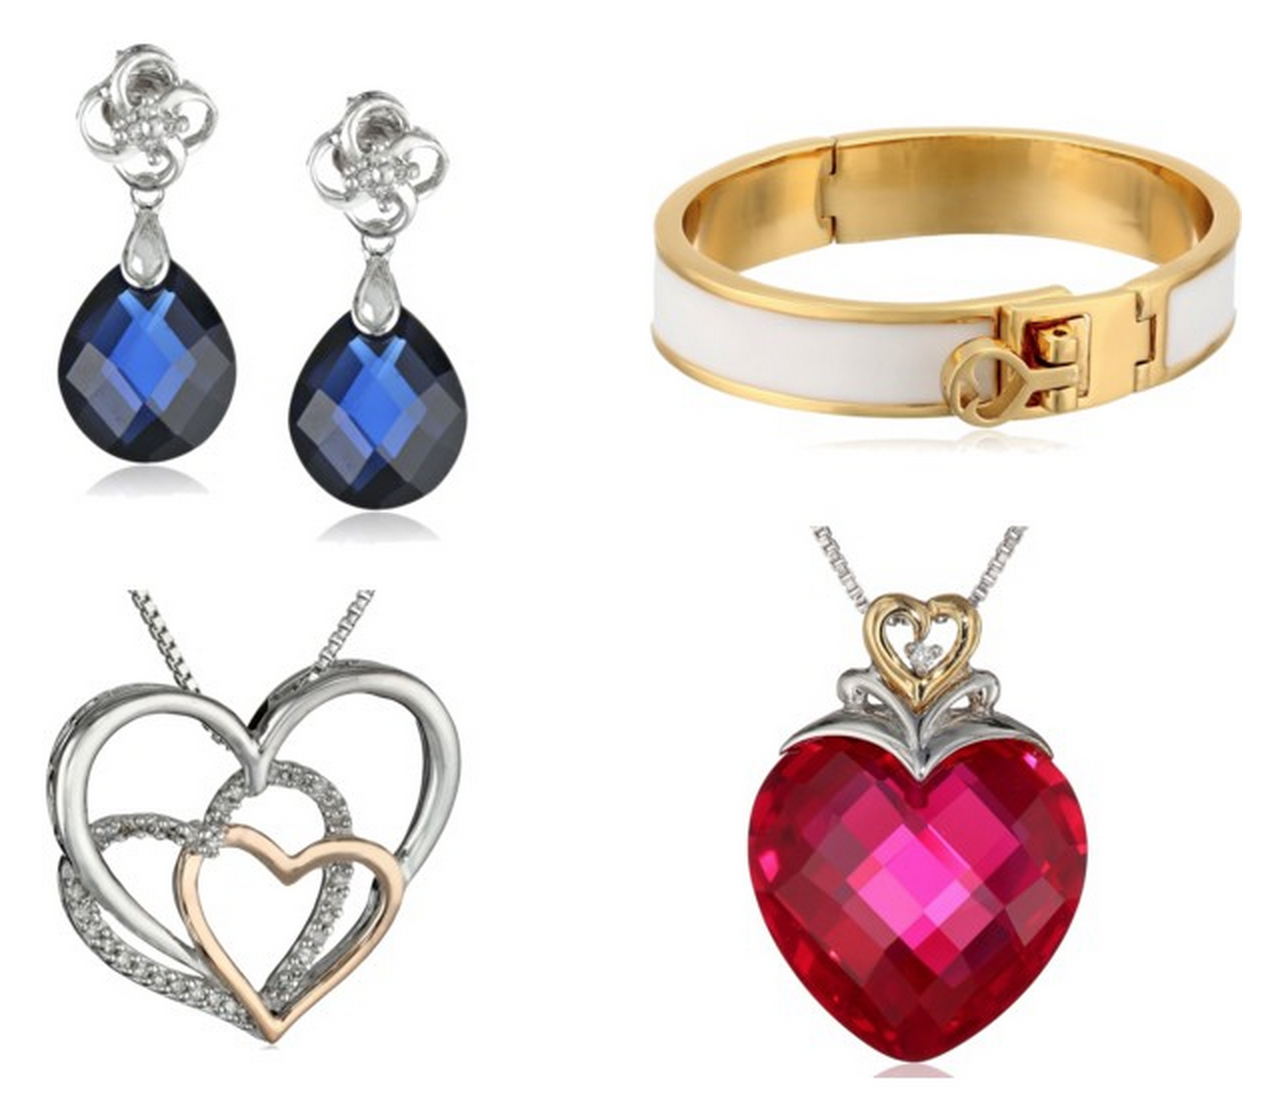 70% Off Jewelry on Amazon + FREE One Day Shipping (Prices Start at Just $15.99!)